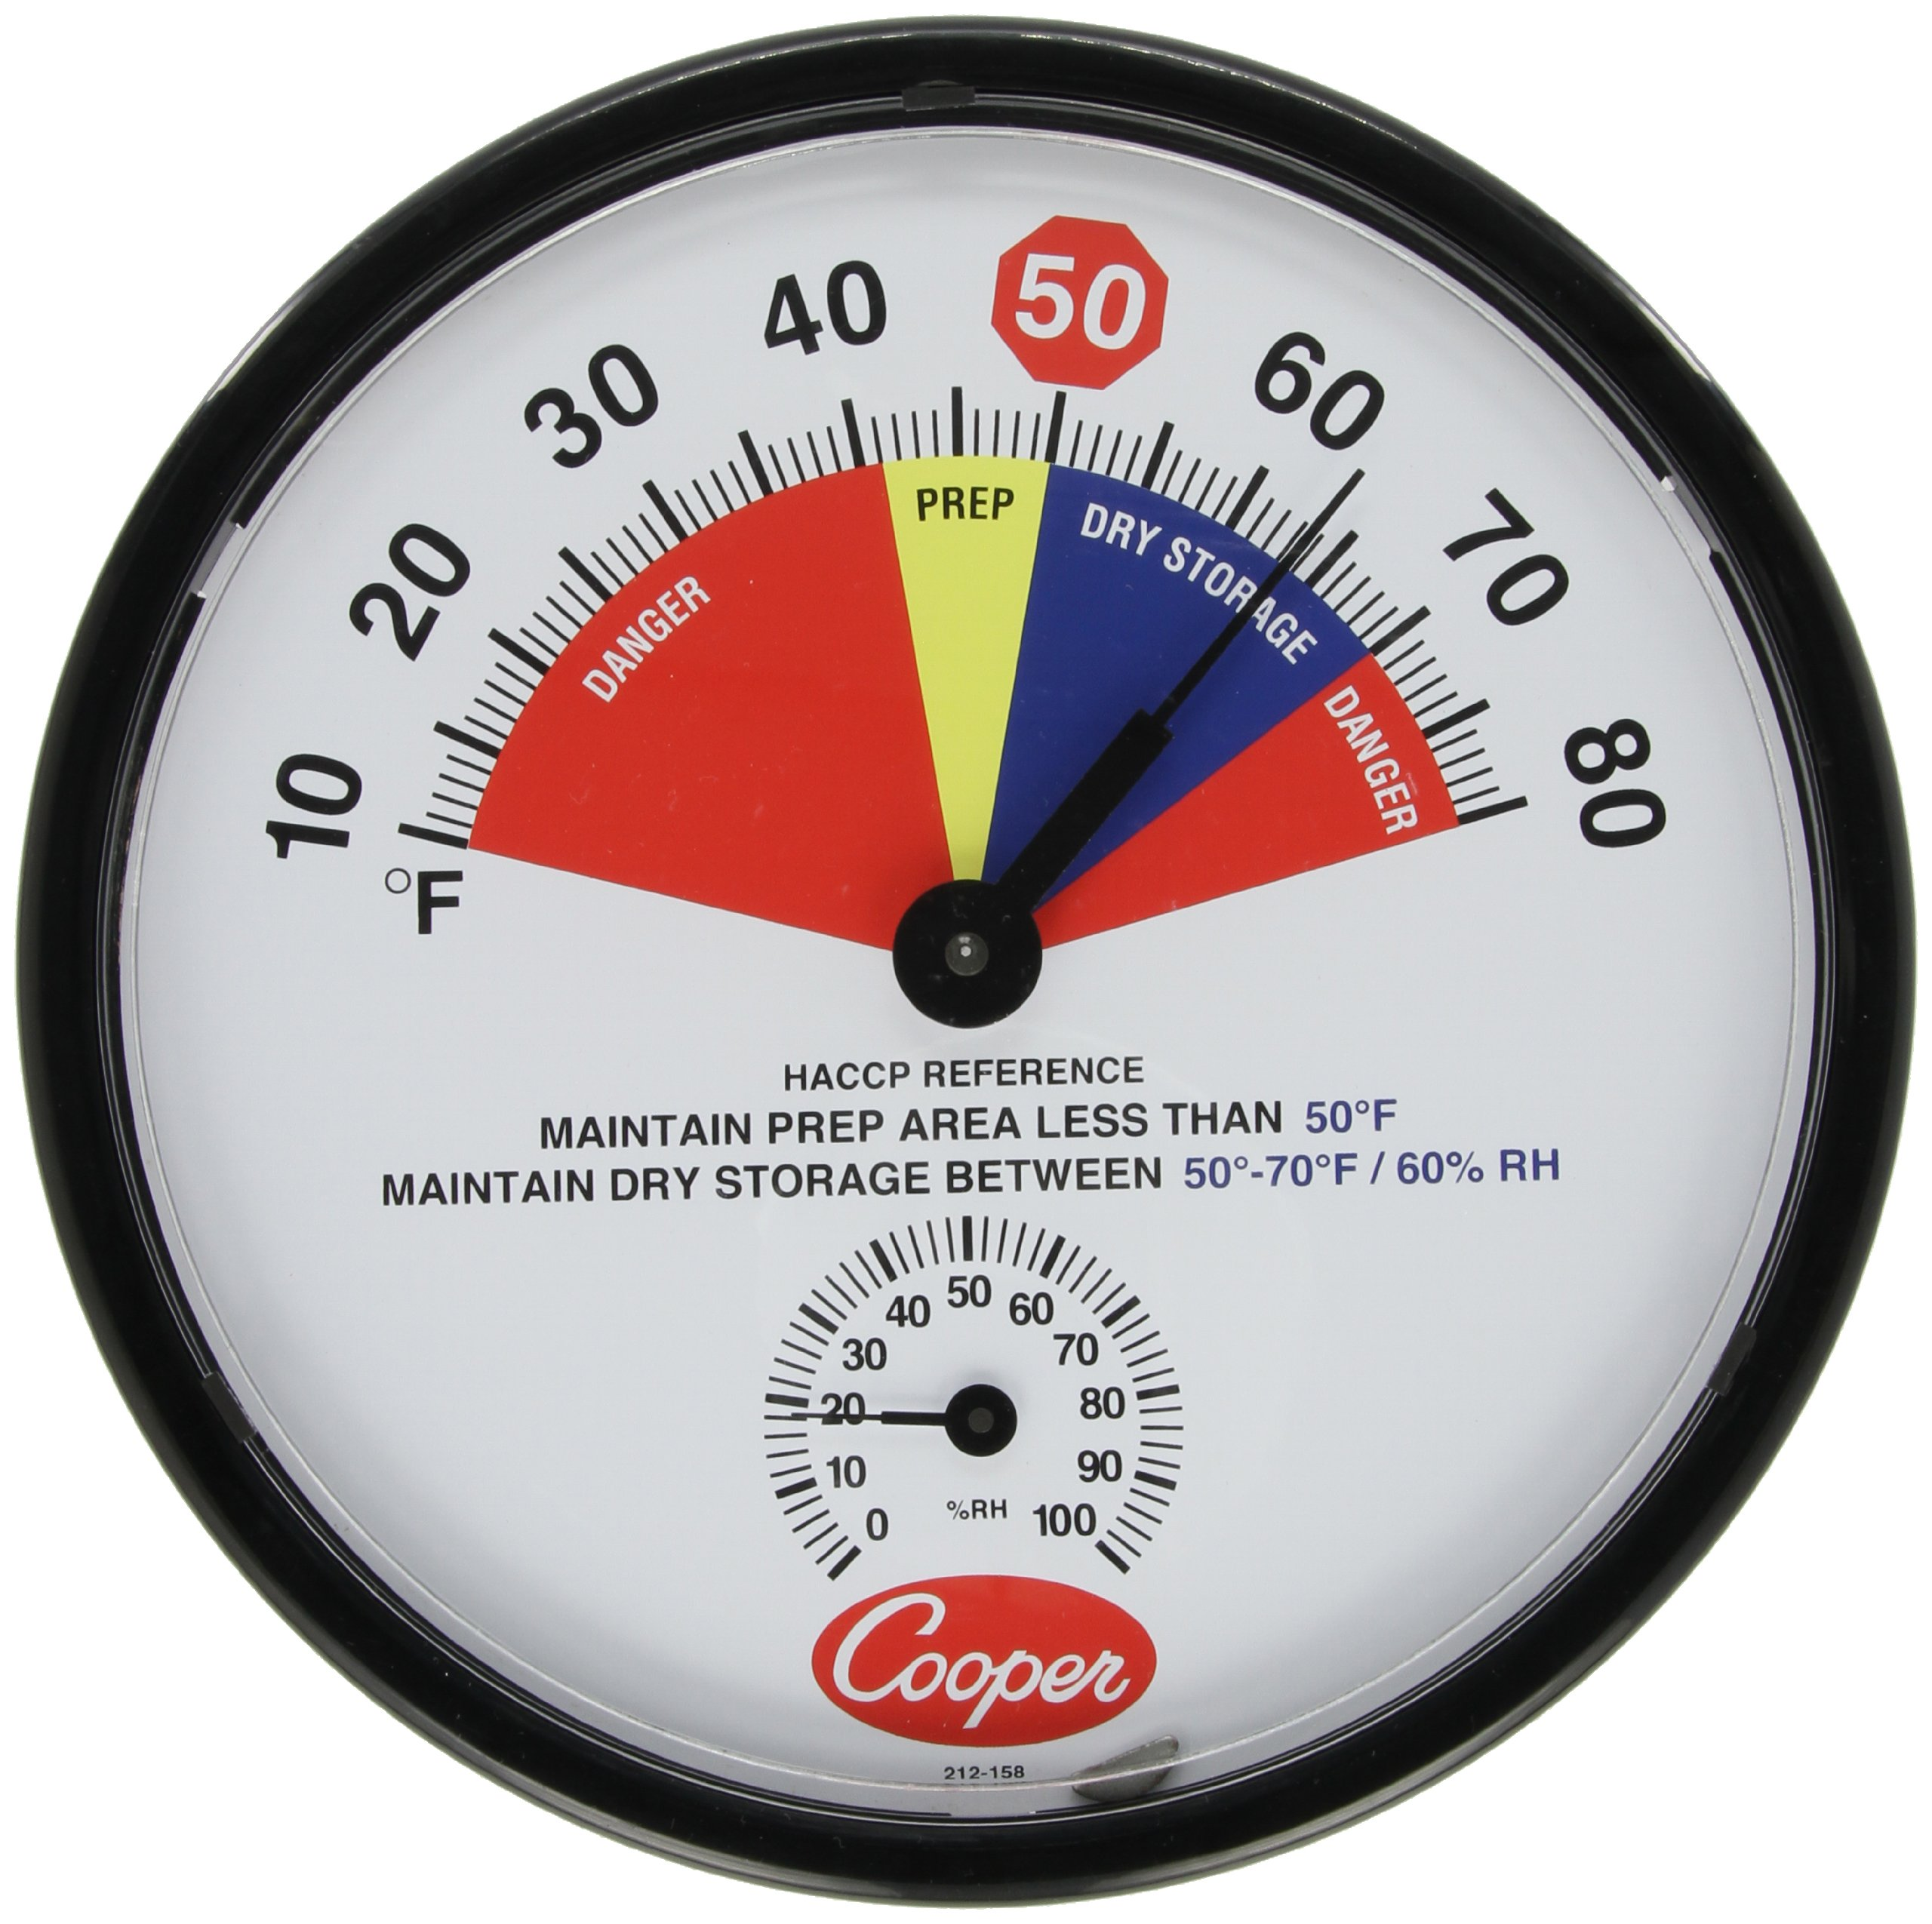 Cooper-Atkins 212-158-8 Bi-Metals Dry Storage/Prep Area Wall Thermometer, 10 to 80 degrees F Temperature Range